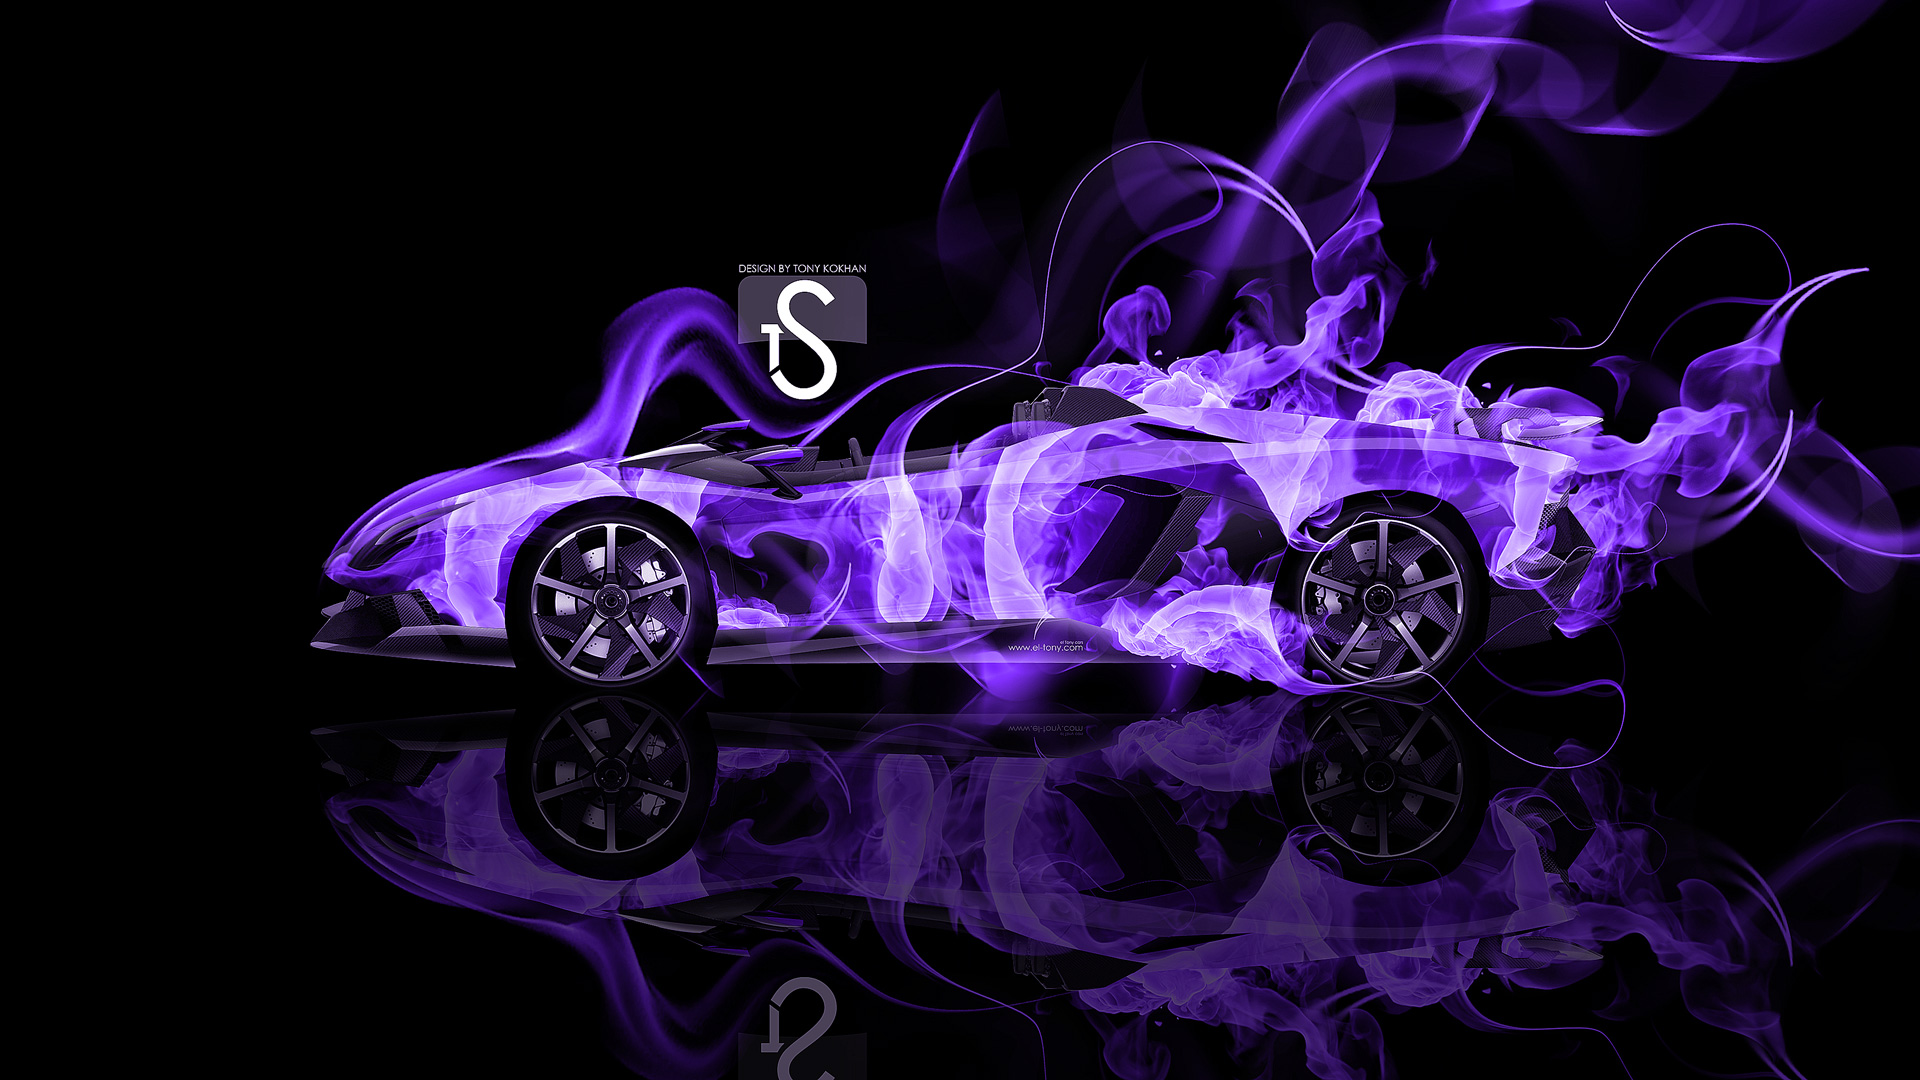 ... Lamborghini Aventador J Fire Abstract Car 2014